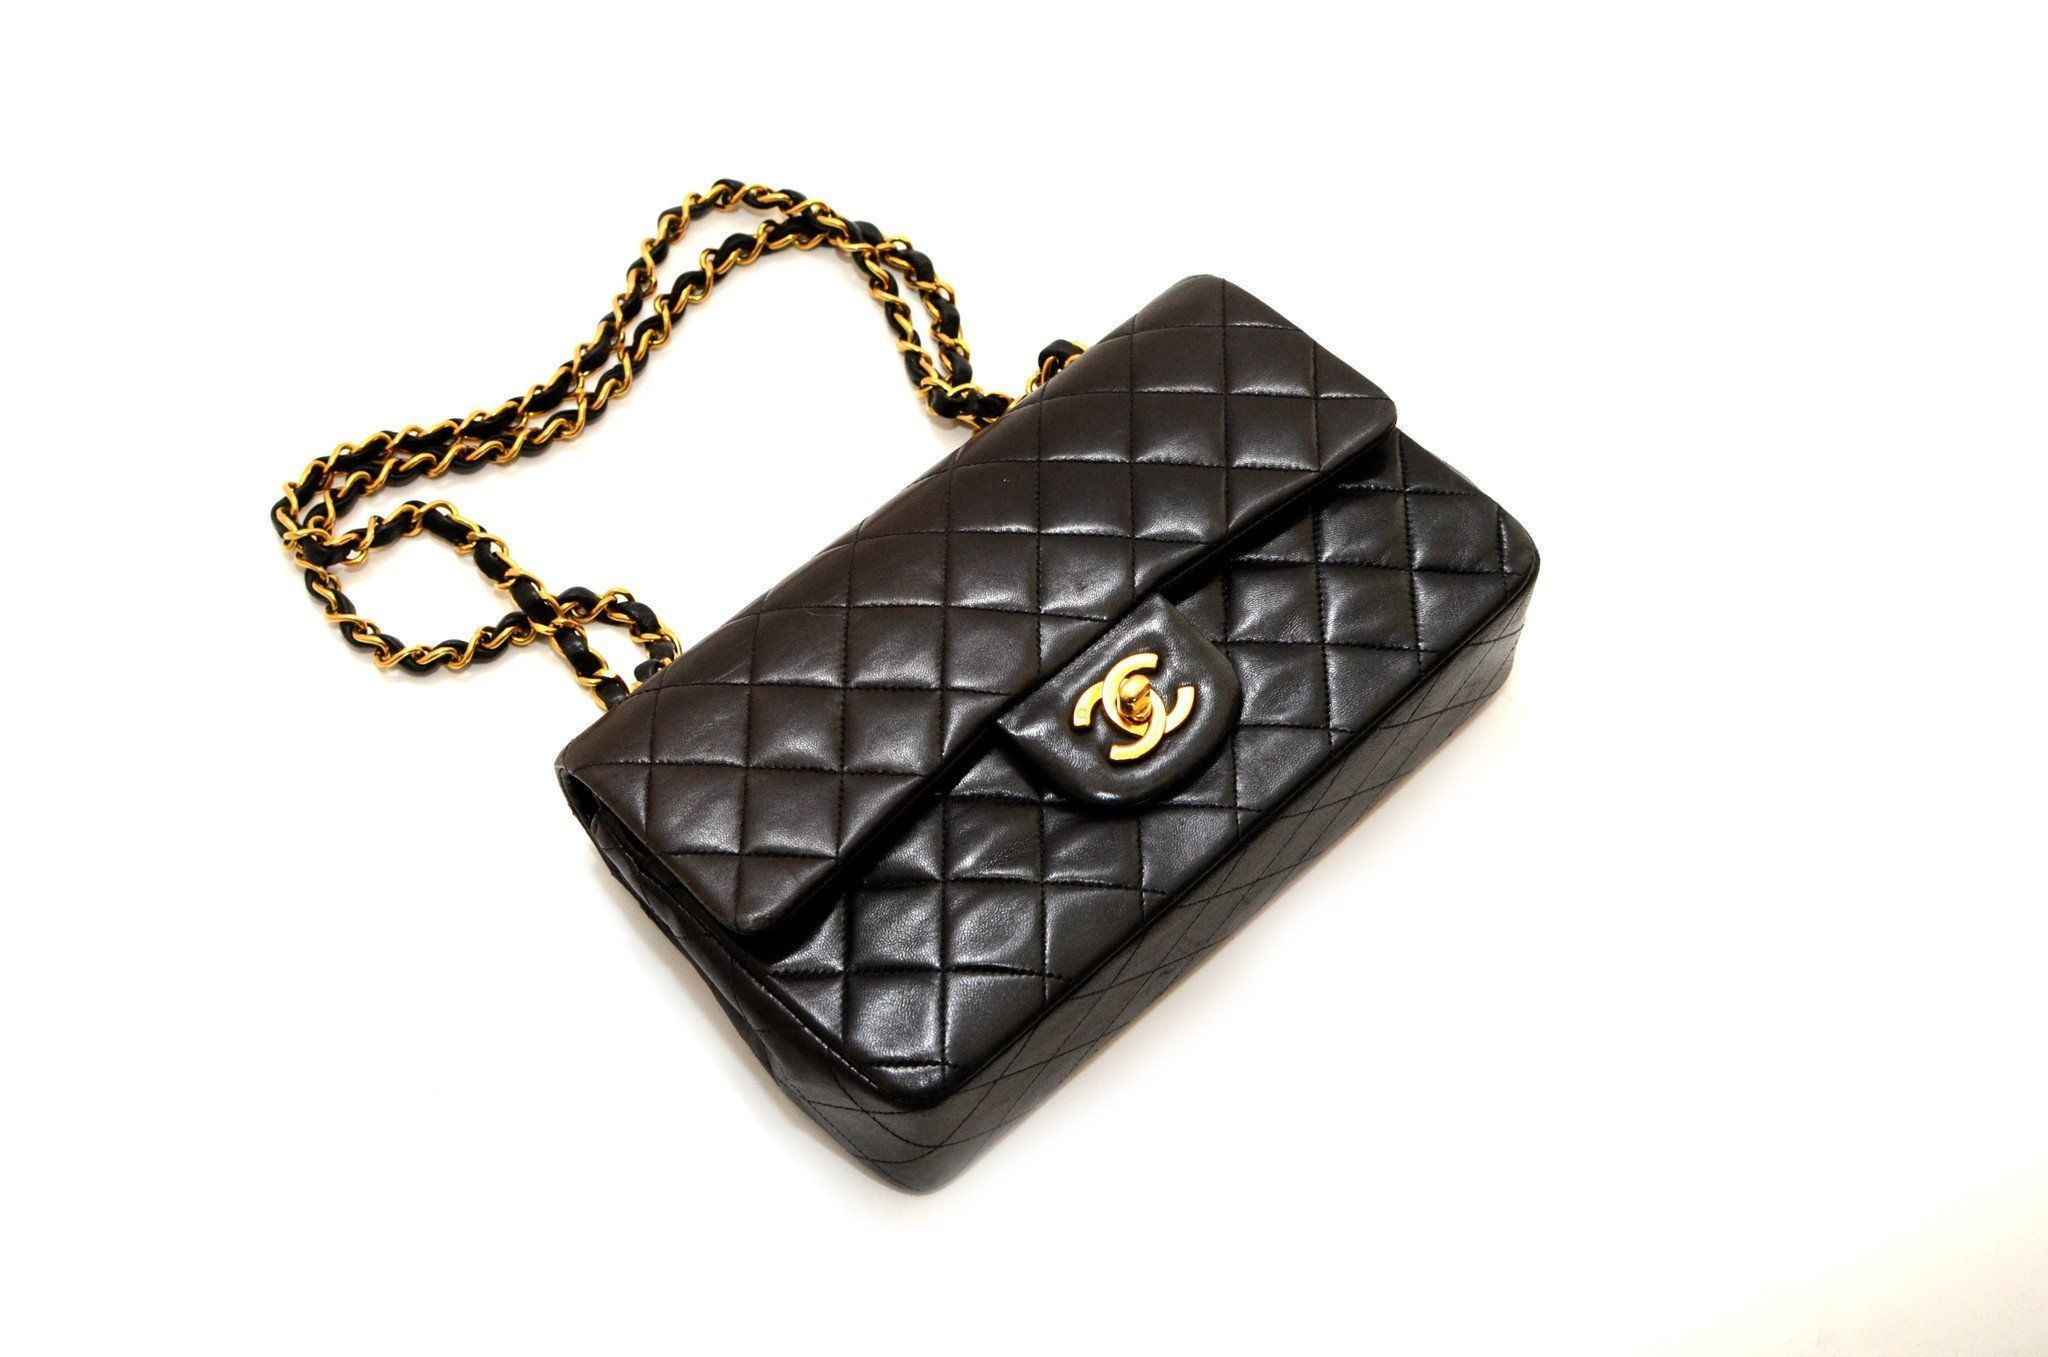 acbaf86d9aed Authentic Vintage Chanel 23cm Bag in Black Calf Leather with Gold Hardware